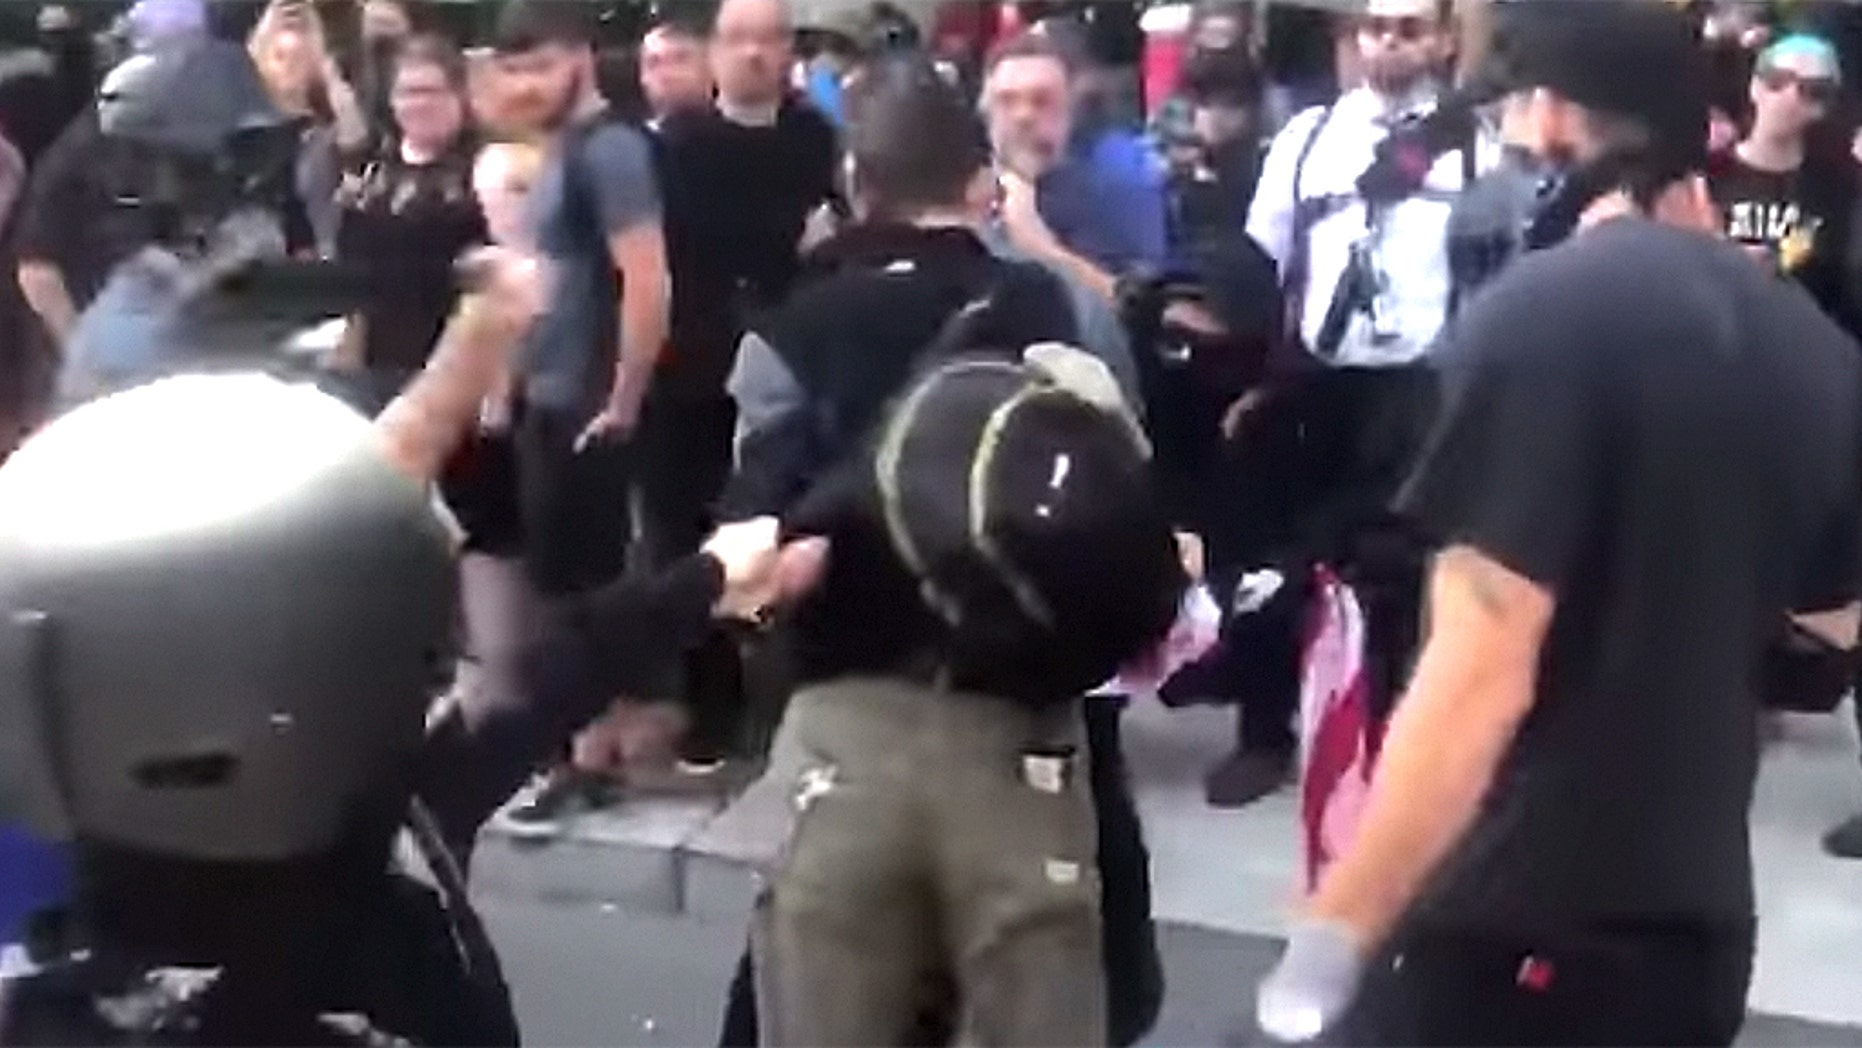 Paul Welch was beaten by Antifa members for carrying an American flag at an counter-protest in Portland, Oregon.